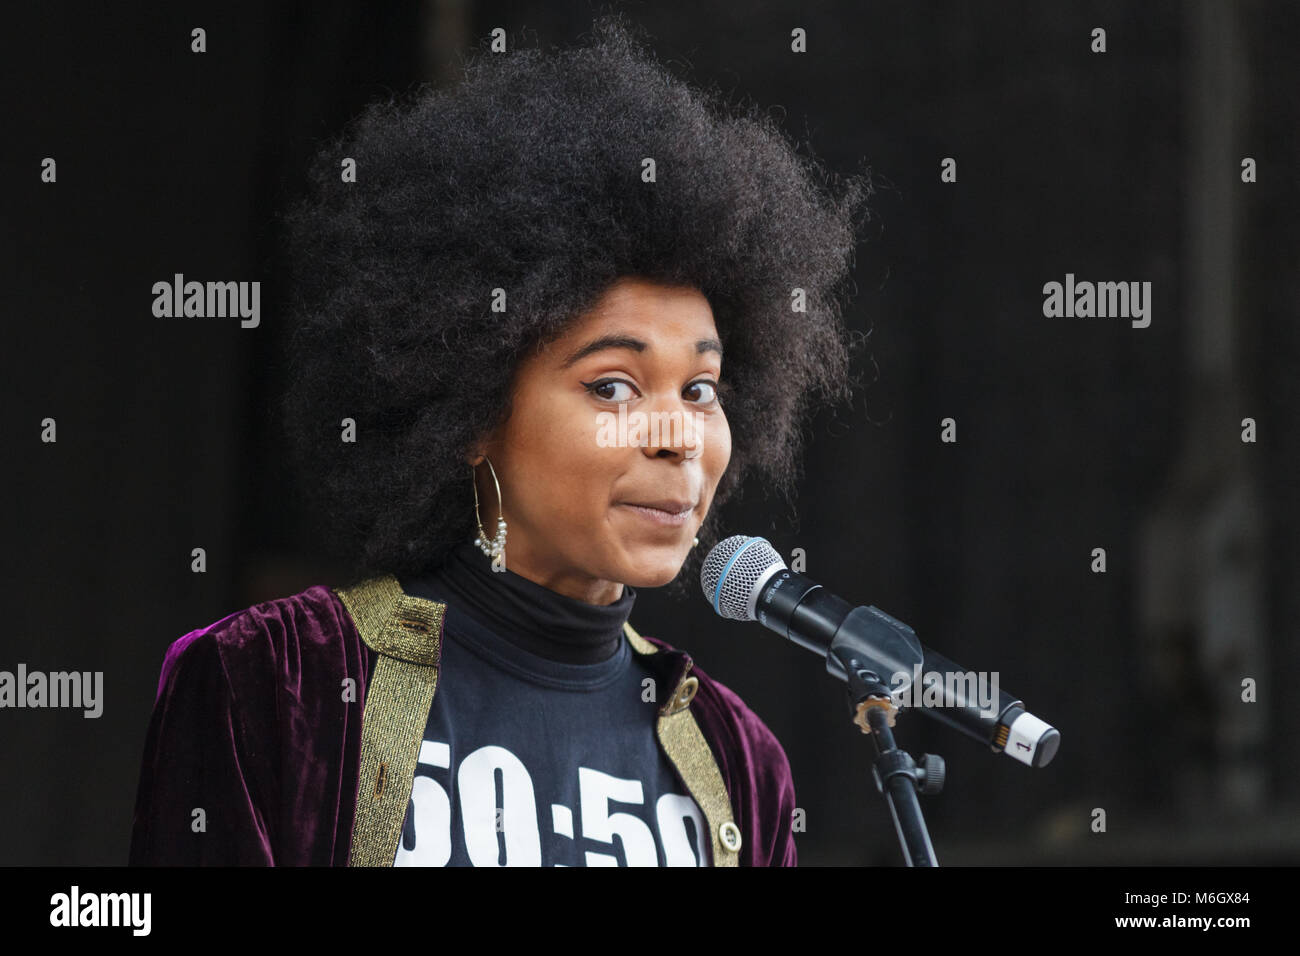 Westminster, London, 4th March 2018. Isabel Adomakoh Young, actress and campaigner, speaks at the rally. Thousands - Stock Image